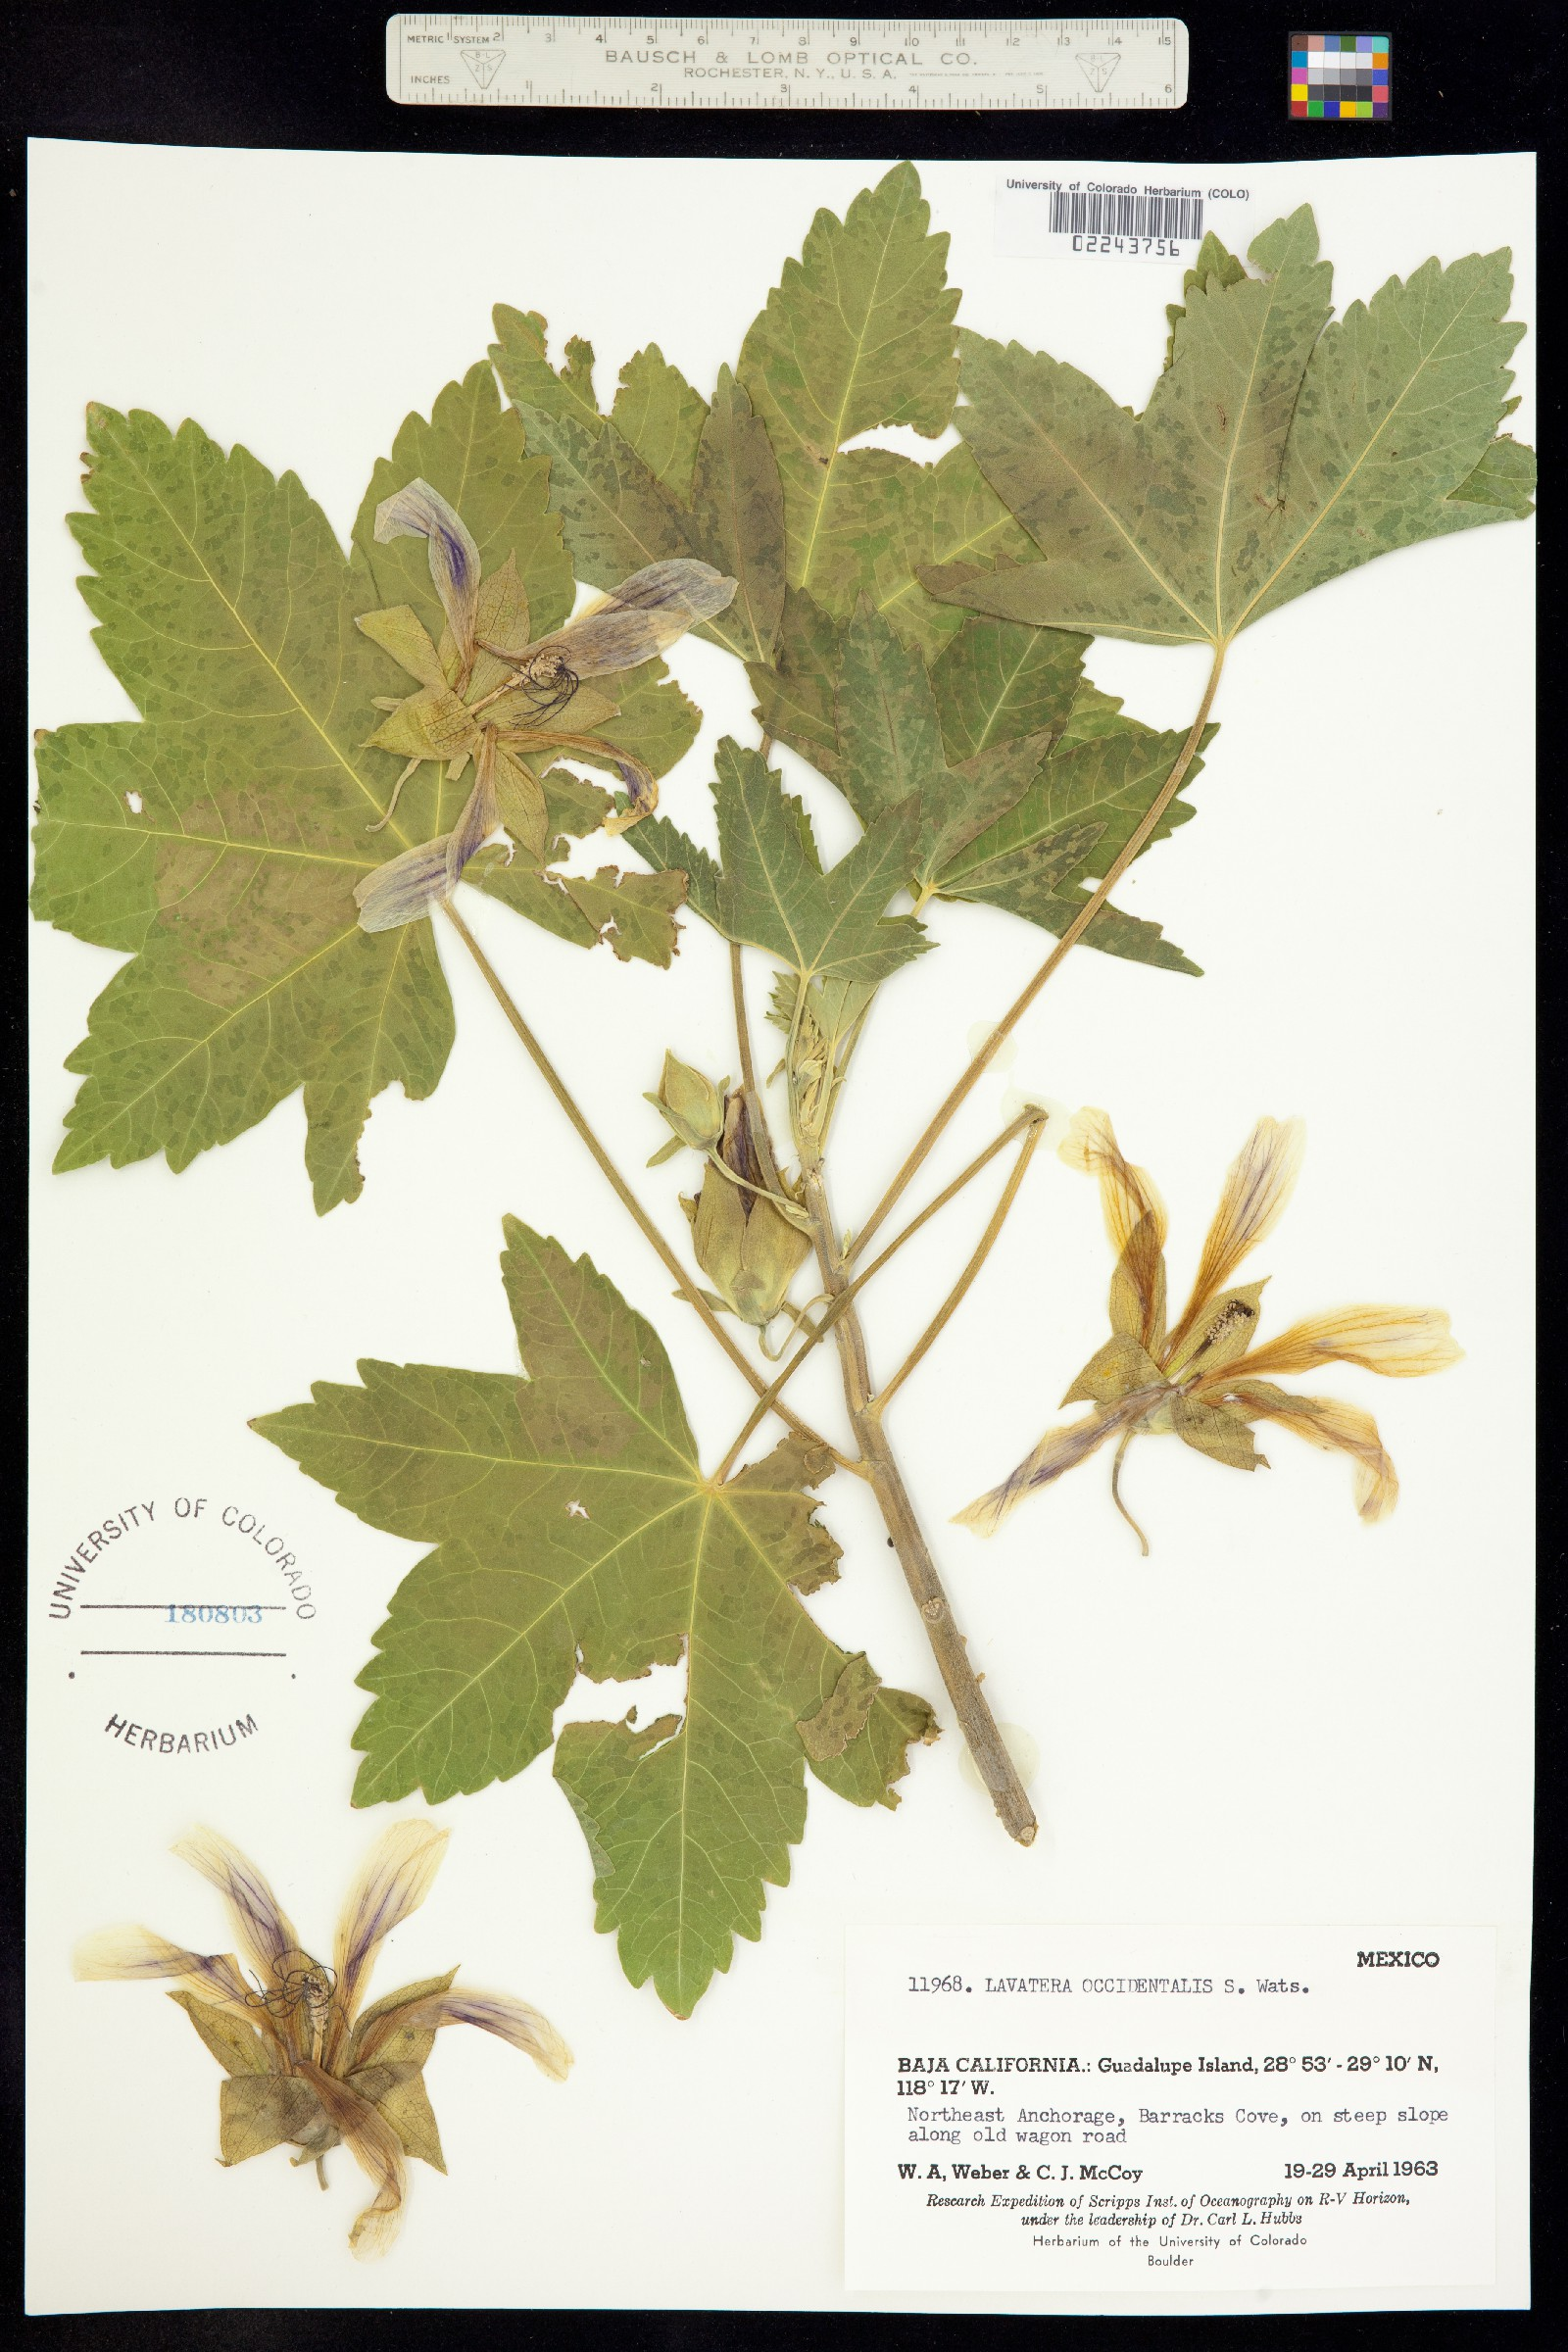 Malva occidentalis image